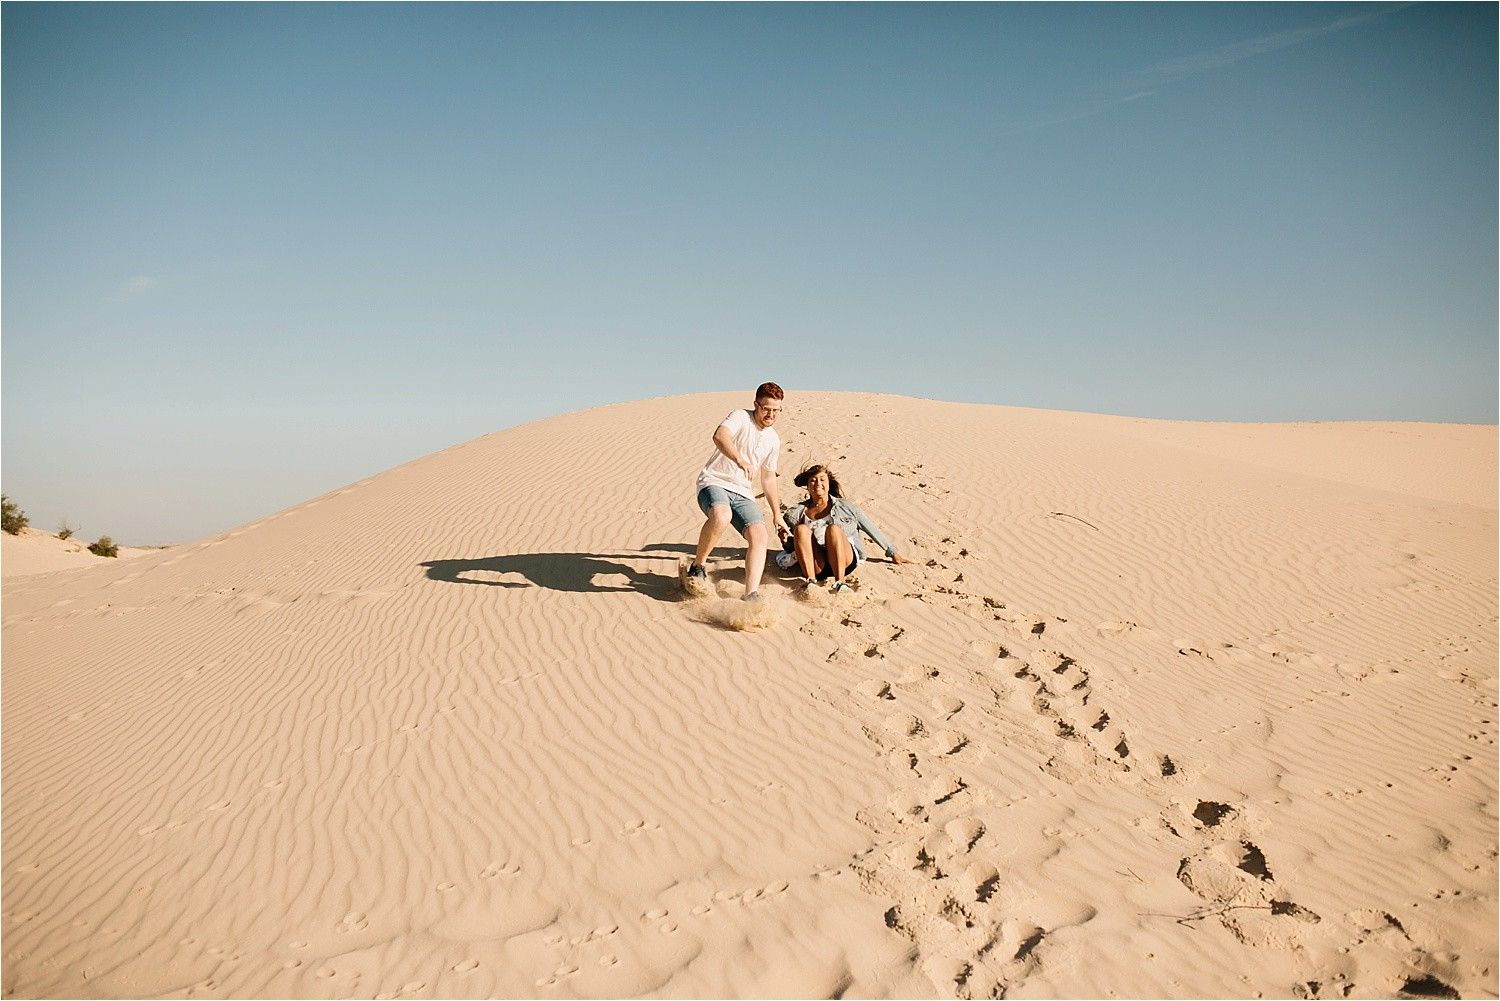 Lauren + Jacob __ a monahans sand dunes engagement session at sunrise by North Texas Wedding Photographer, Rachel Meagan Photography __ 50